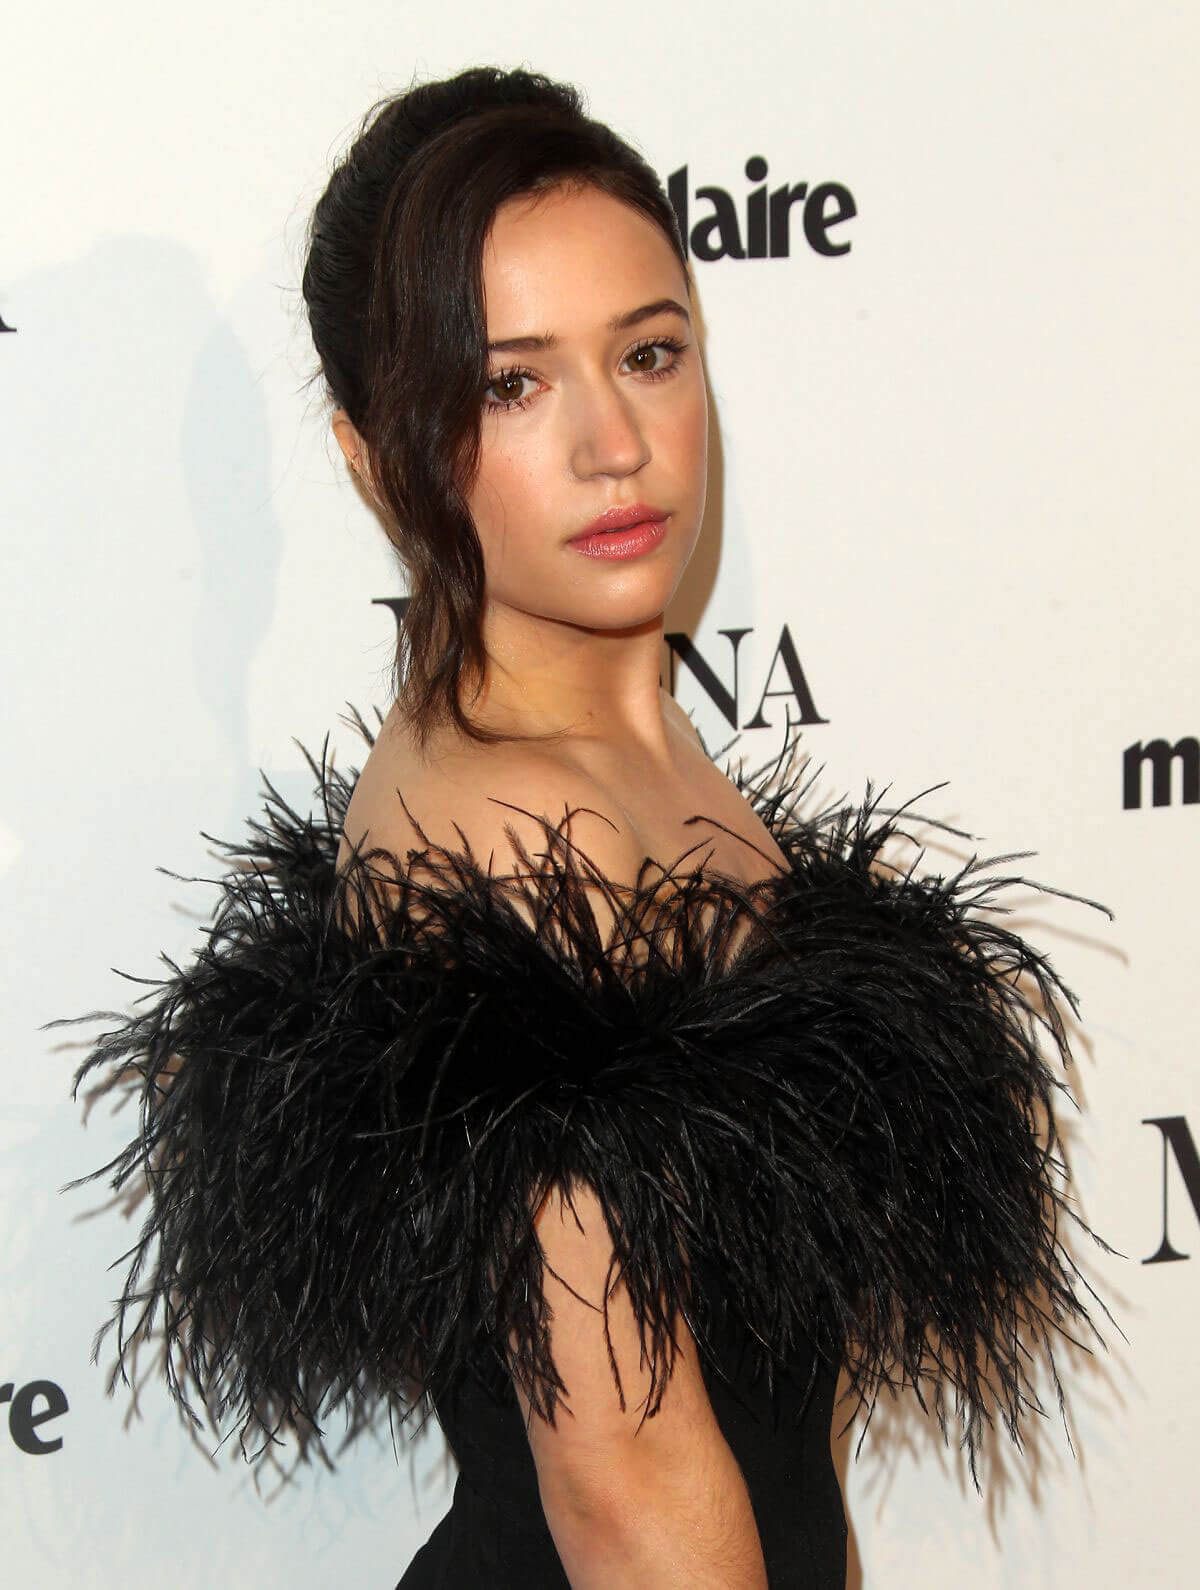 35 Gideon Adlon Nude Pictures Are Sure To Keep You At The Edge Of Your Seat 7